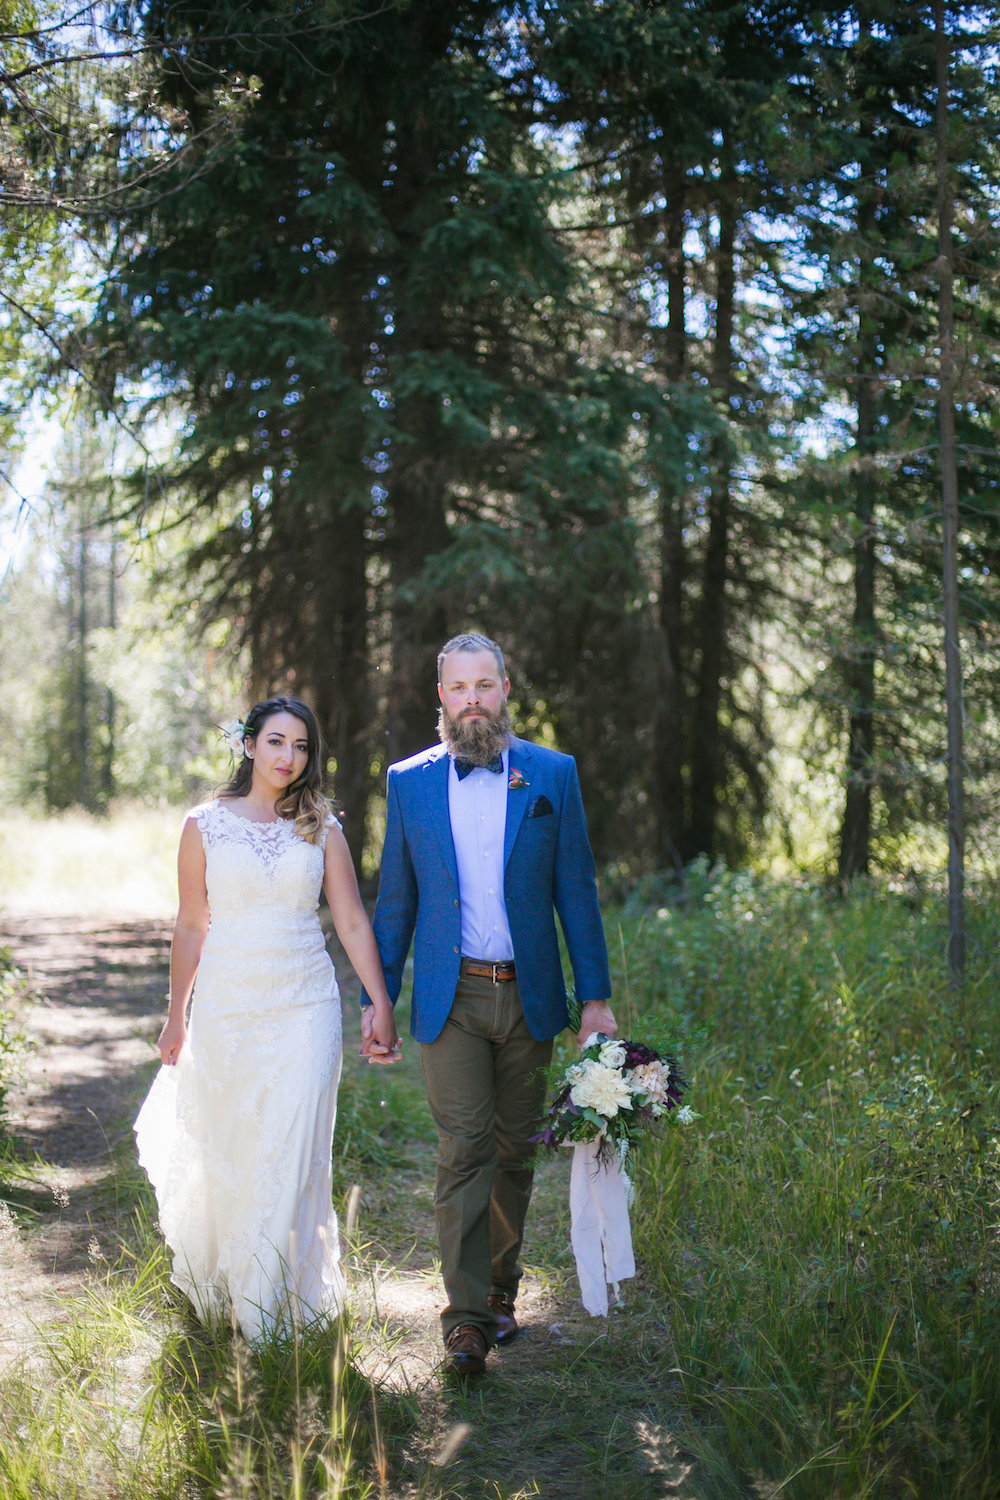 Justin and Cole, McCall Wedding, Cimbalik Photography, Ira and Lucy Wedding Planner